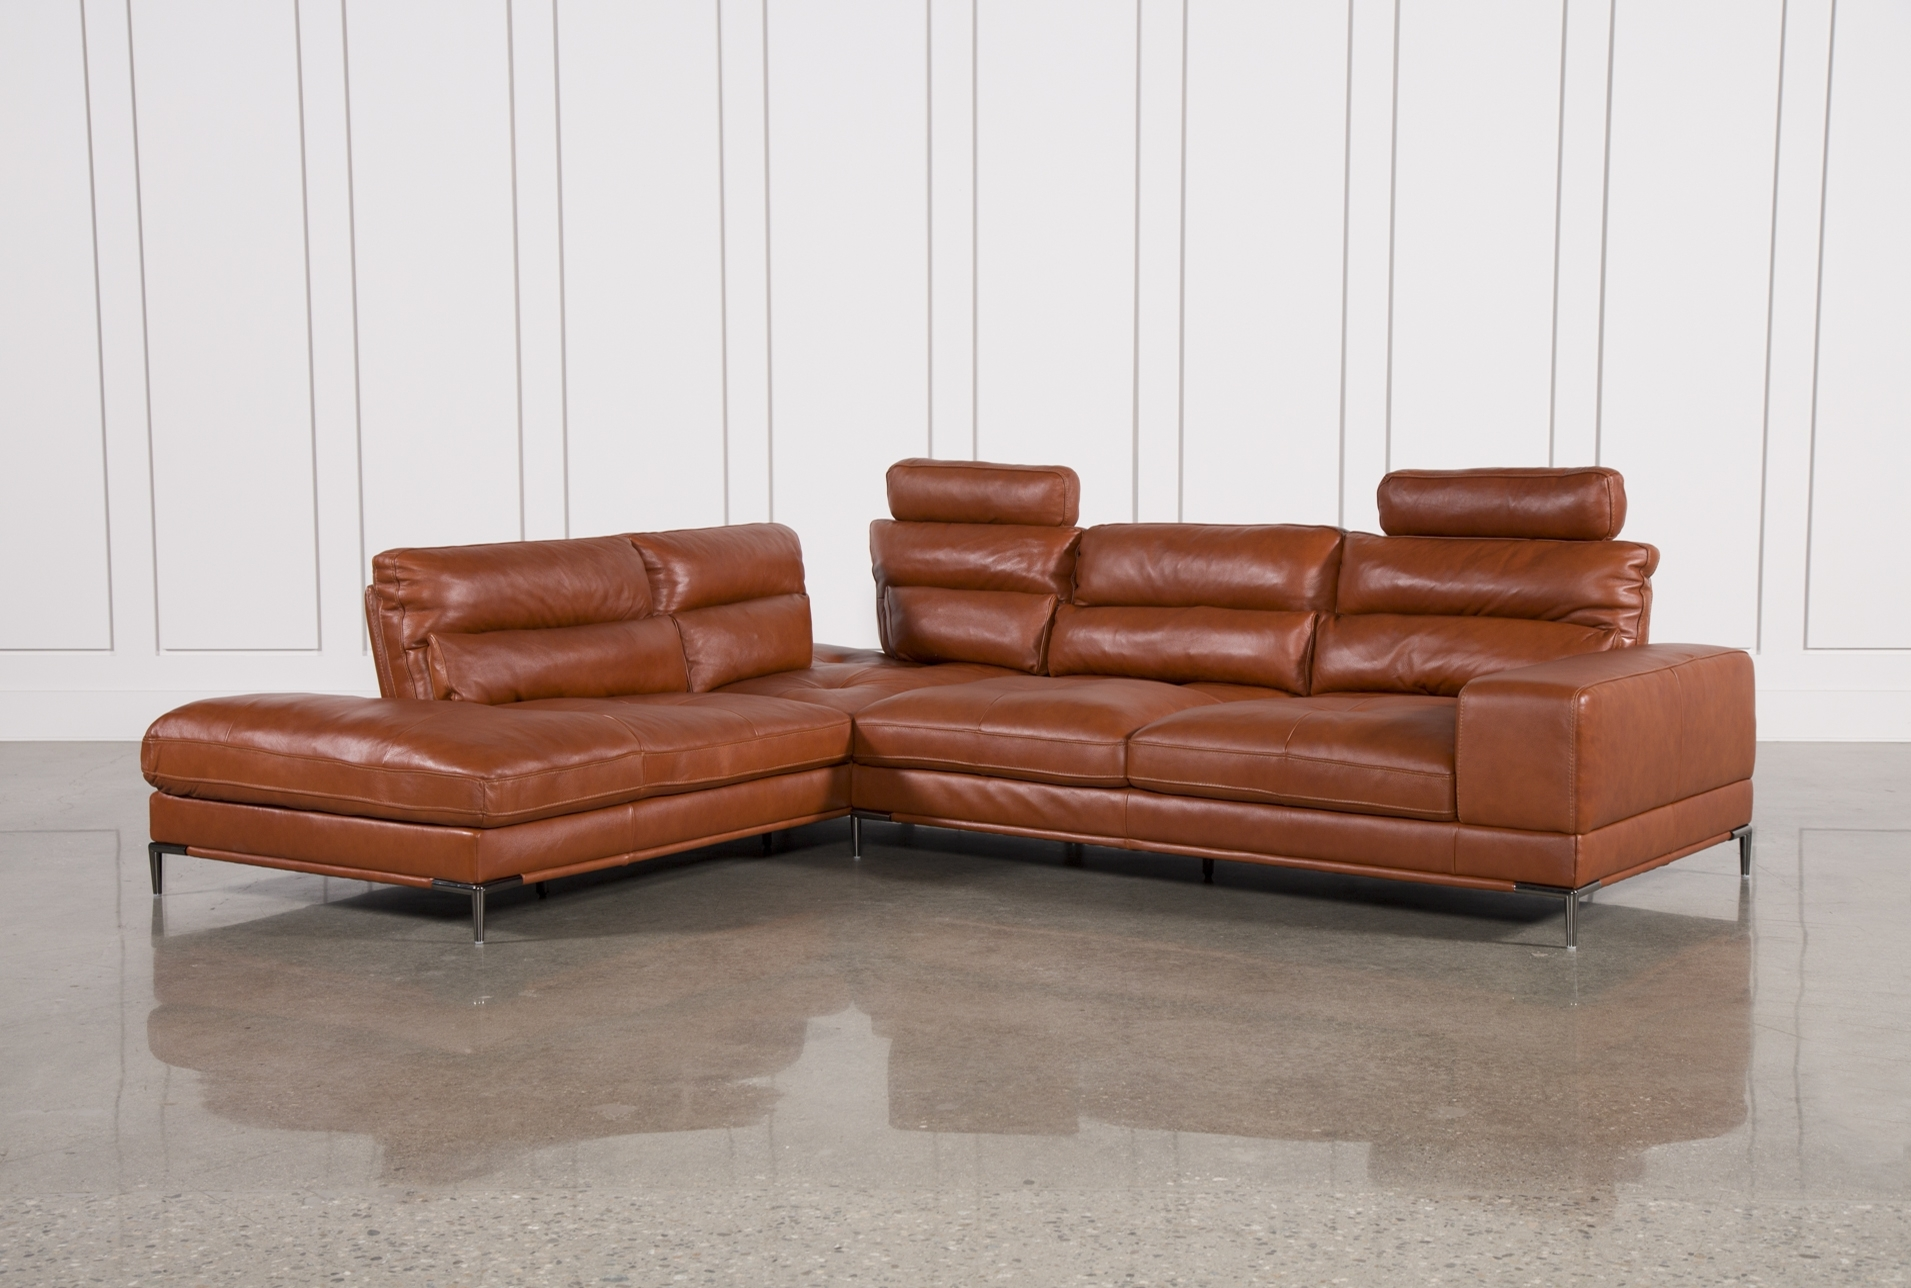 Tenny Cognac 2 Piece Left Facing Chaise Sectional W/2 Headrest Regarding Gordon 3 Piece Sectionals With Raf Chaise (Image 24 of 25)